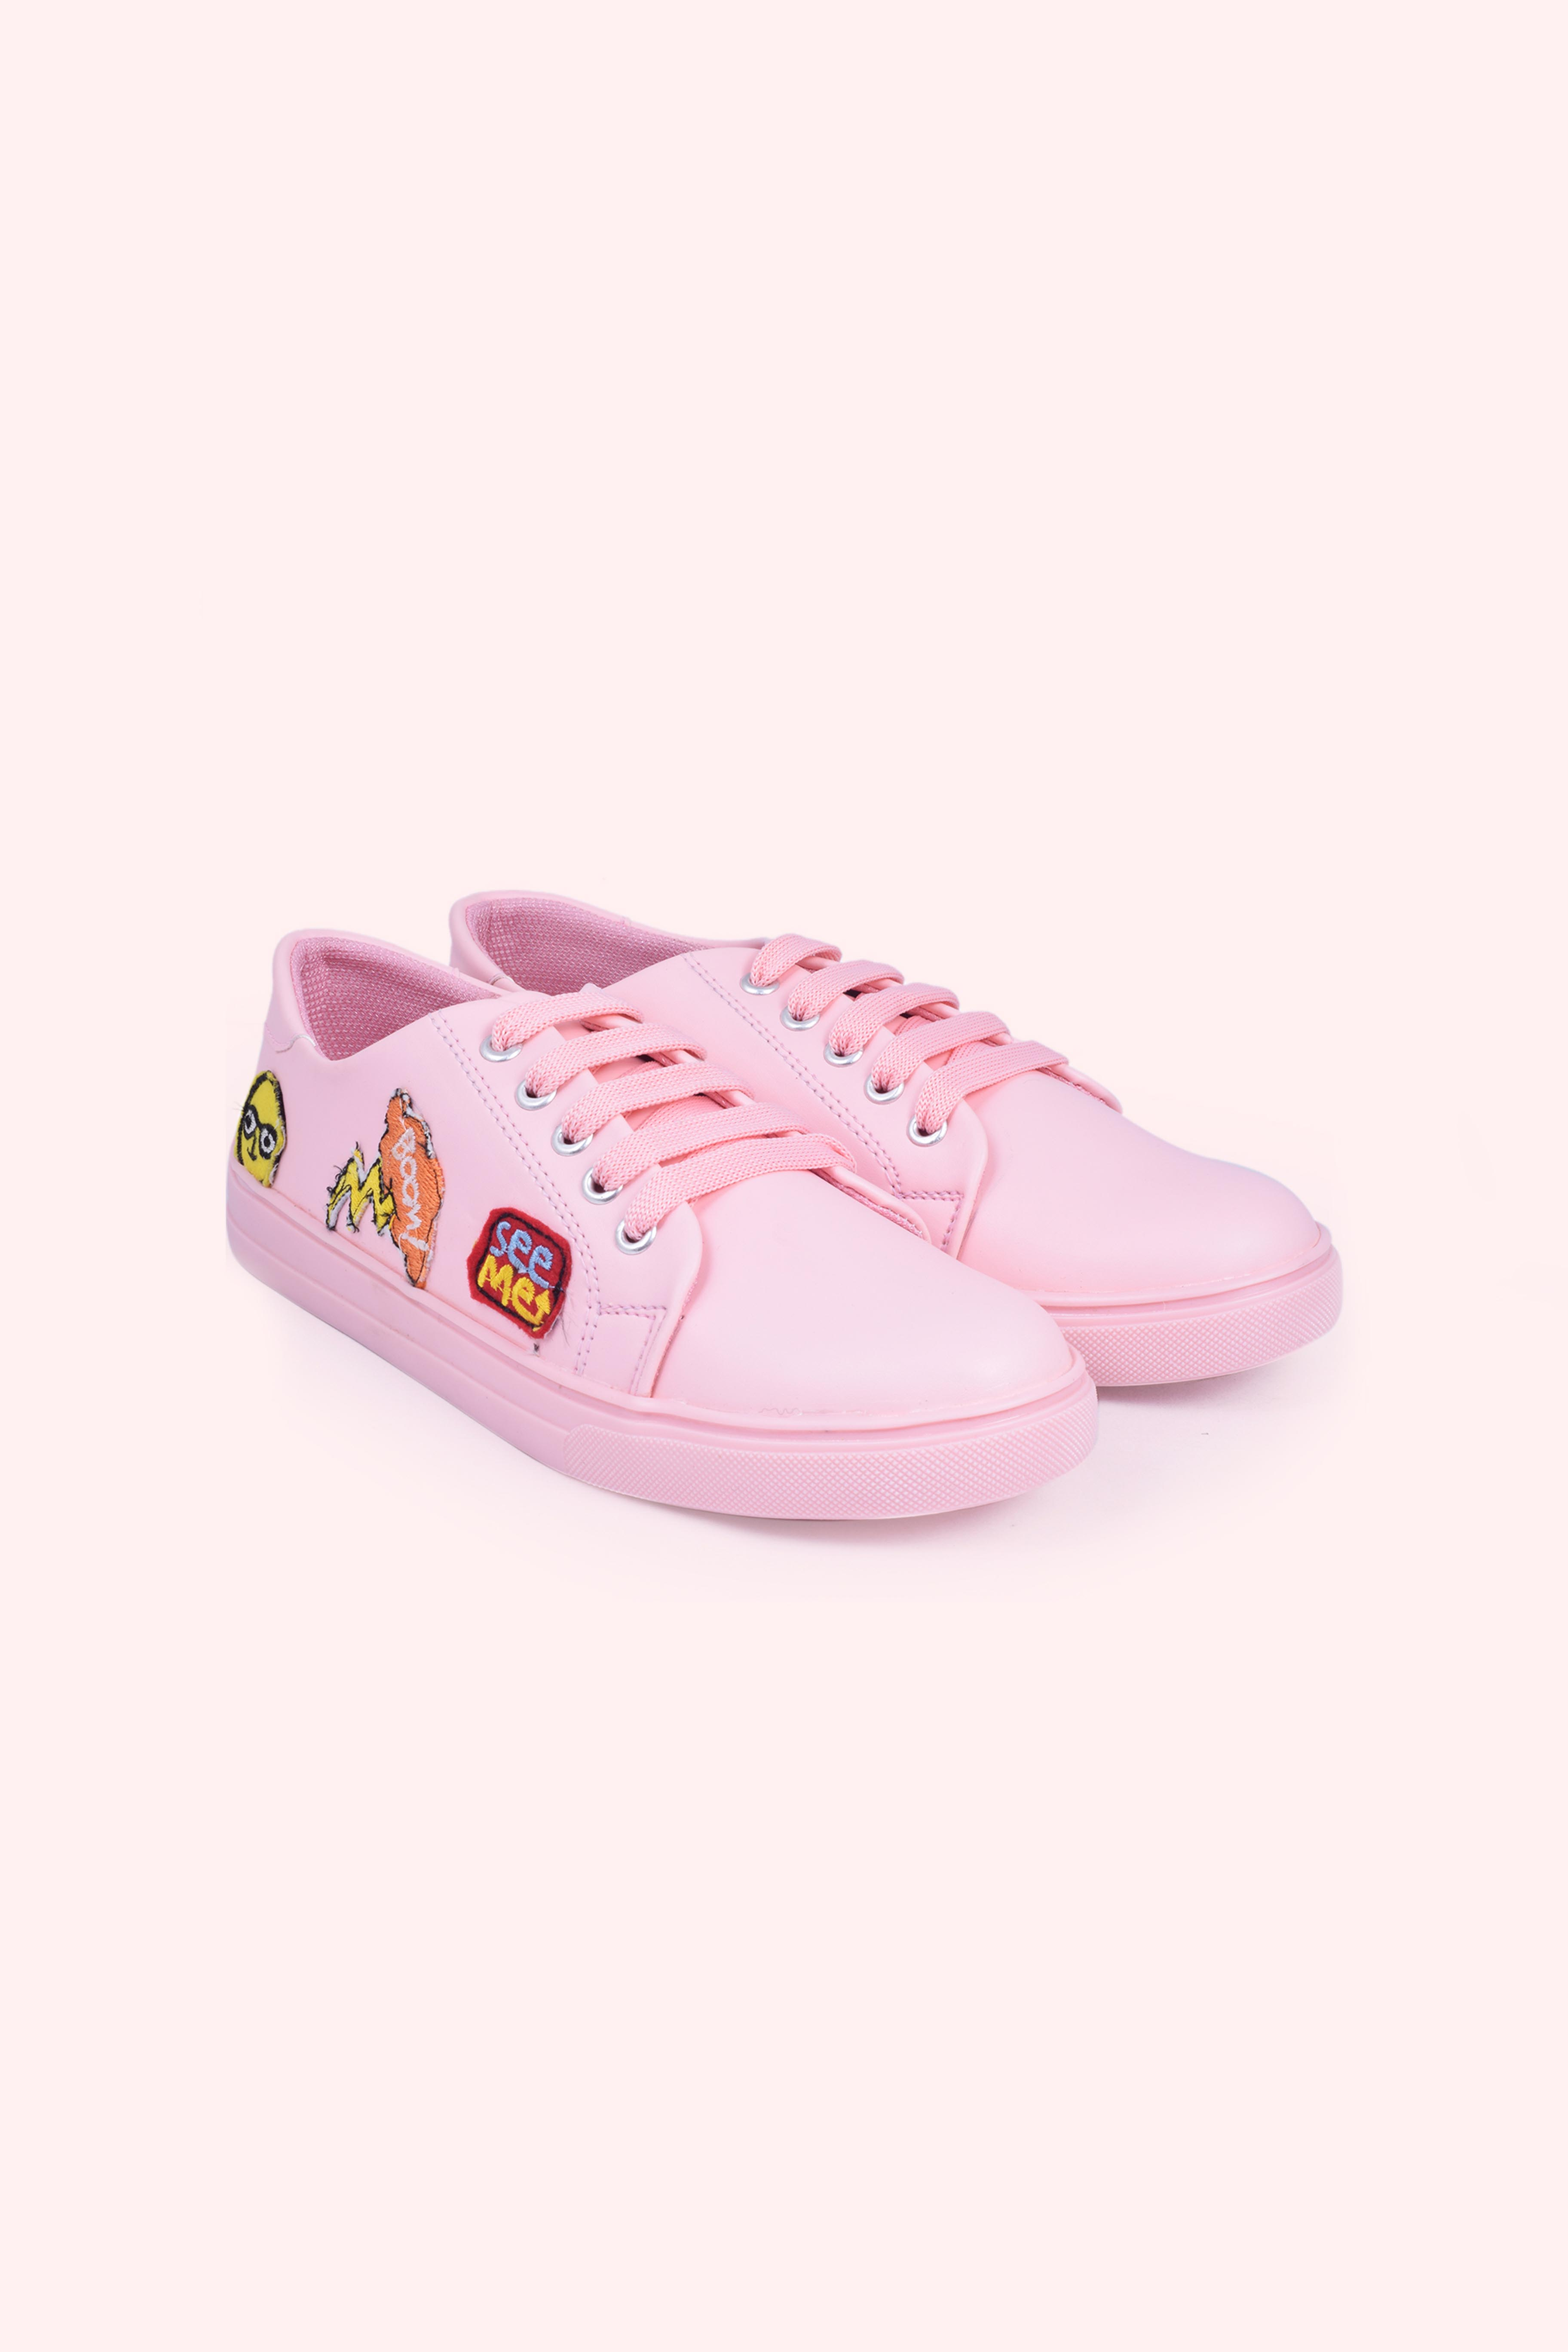 Folle Funky Sticker Pink Embroidery Casual Sneakers